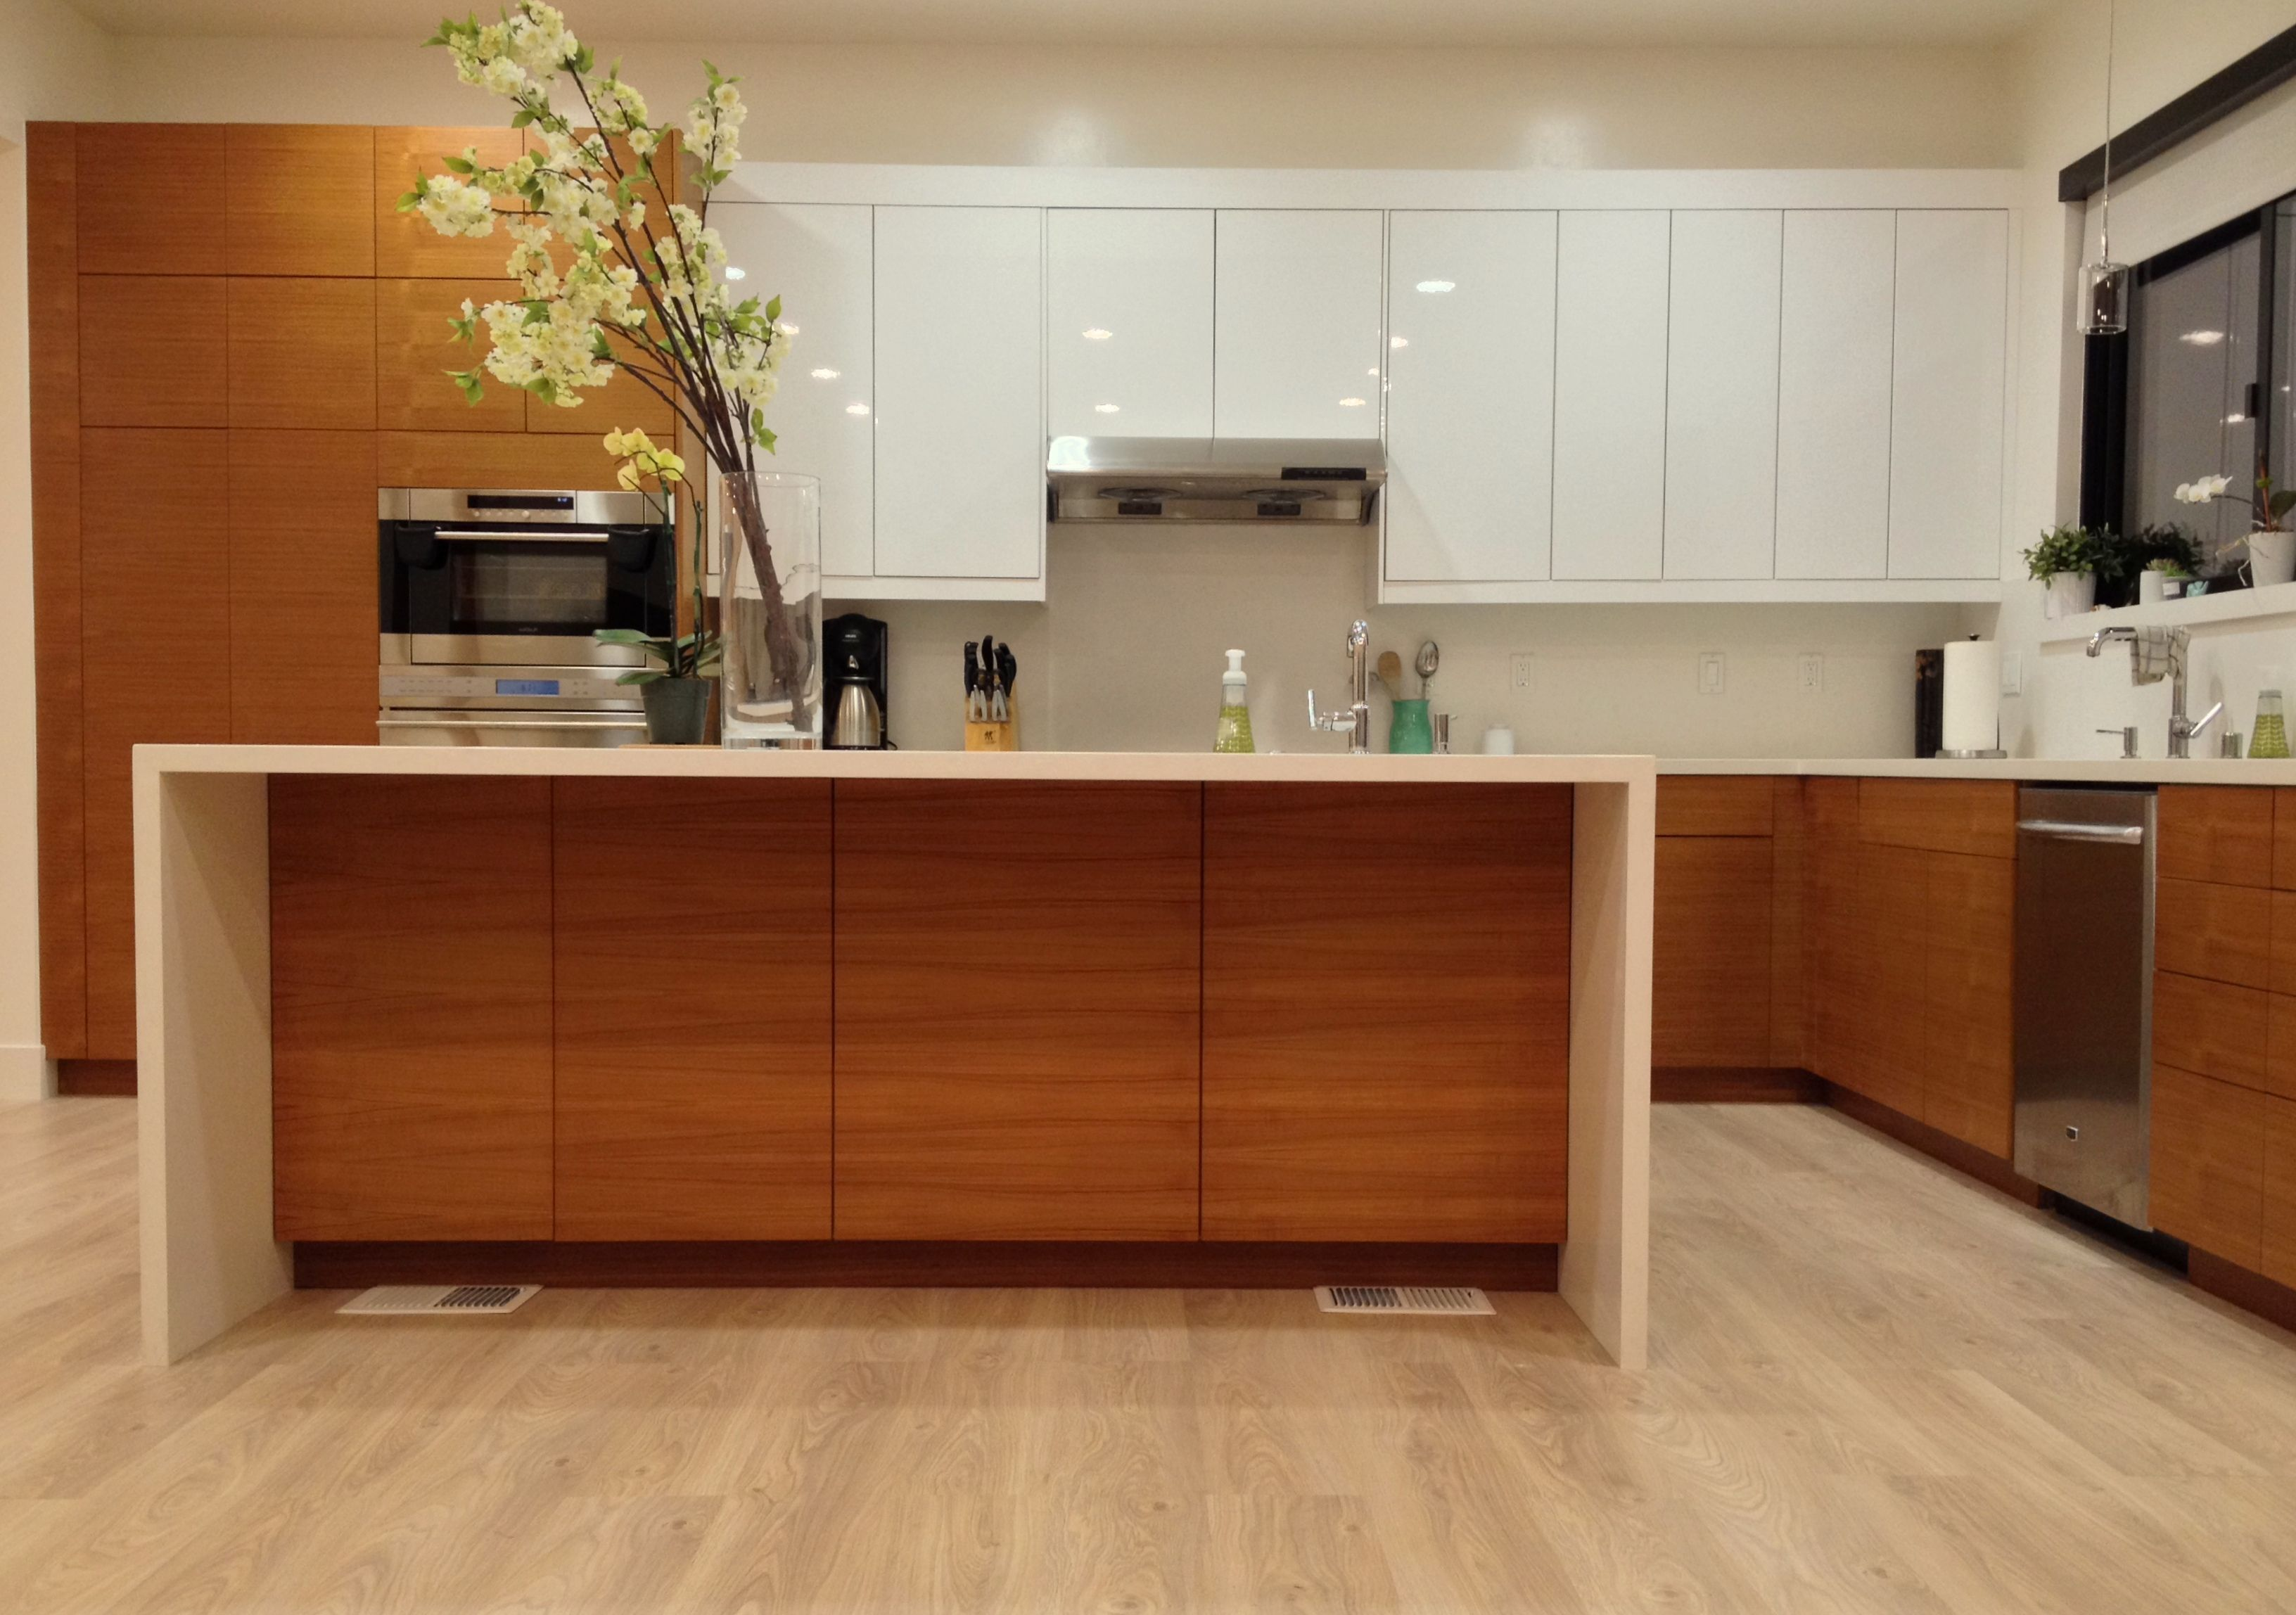 Custom Doors For Ikea Kitchen Cabinets Ikea Kitchen With Semihandmade Rift Teak Fronts